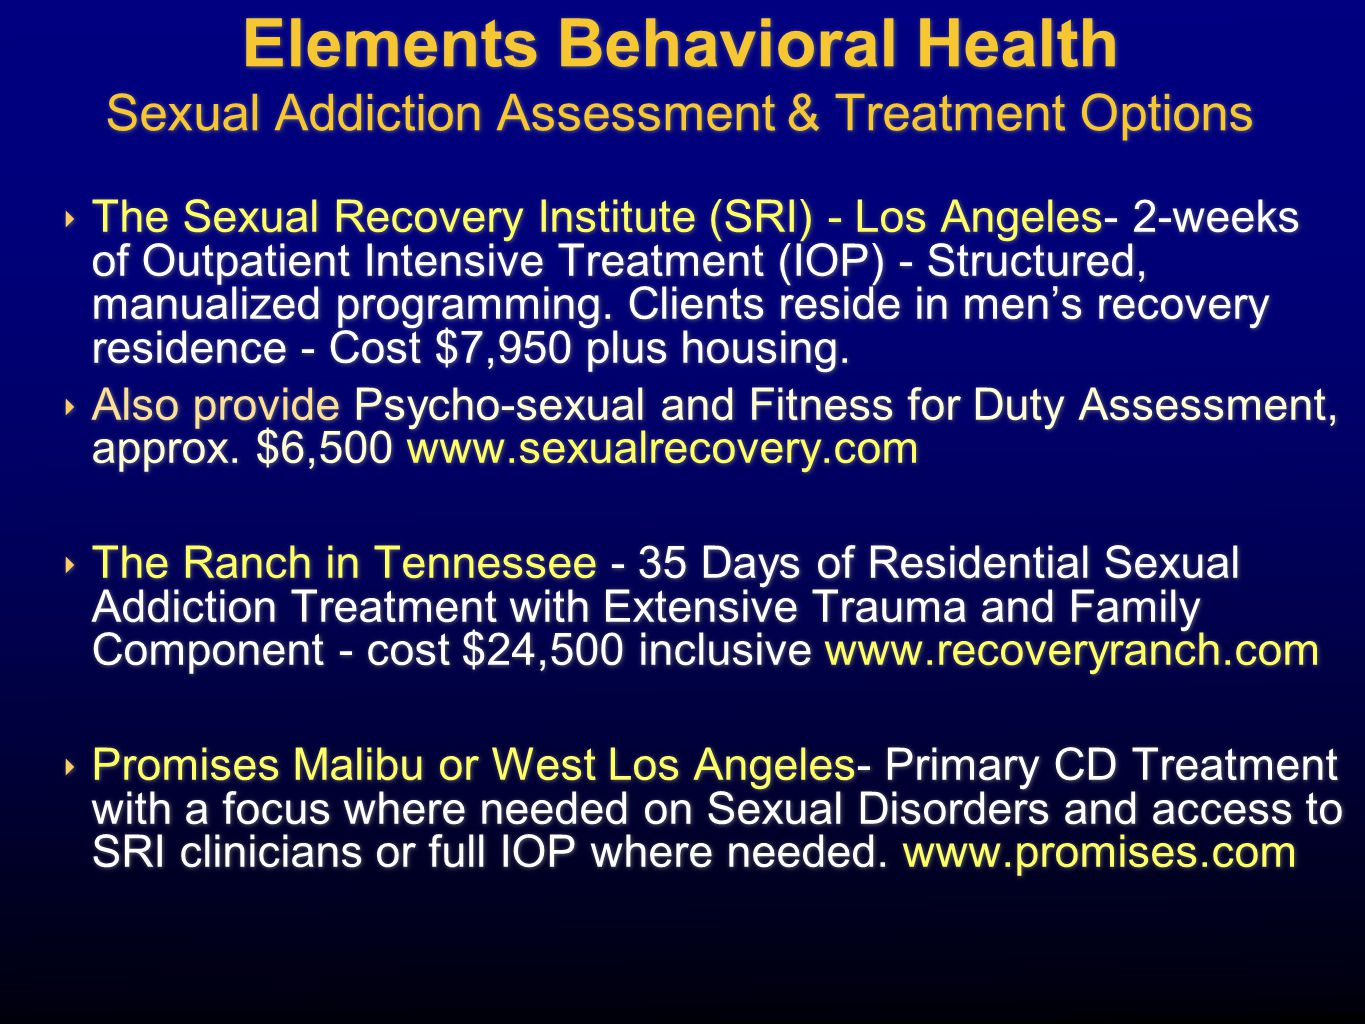 Elements Behavioral Health Sexual Addiction Assessment & Treatment Options